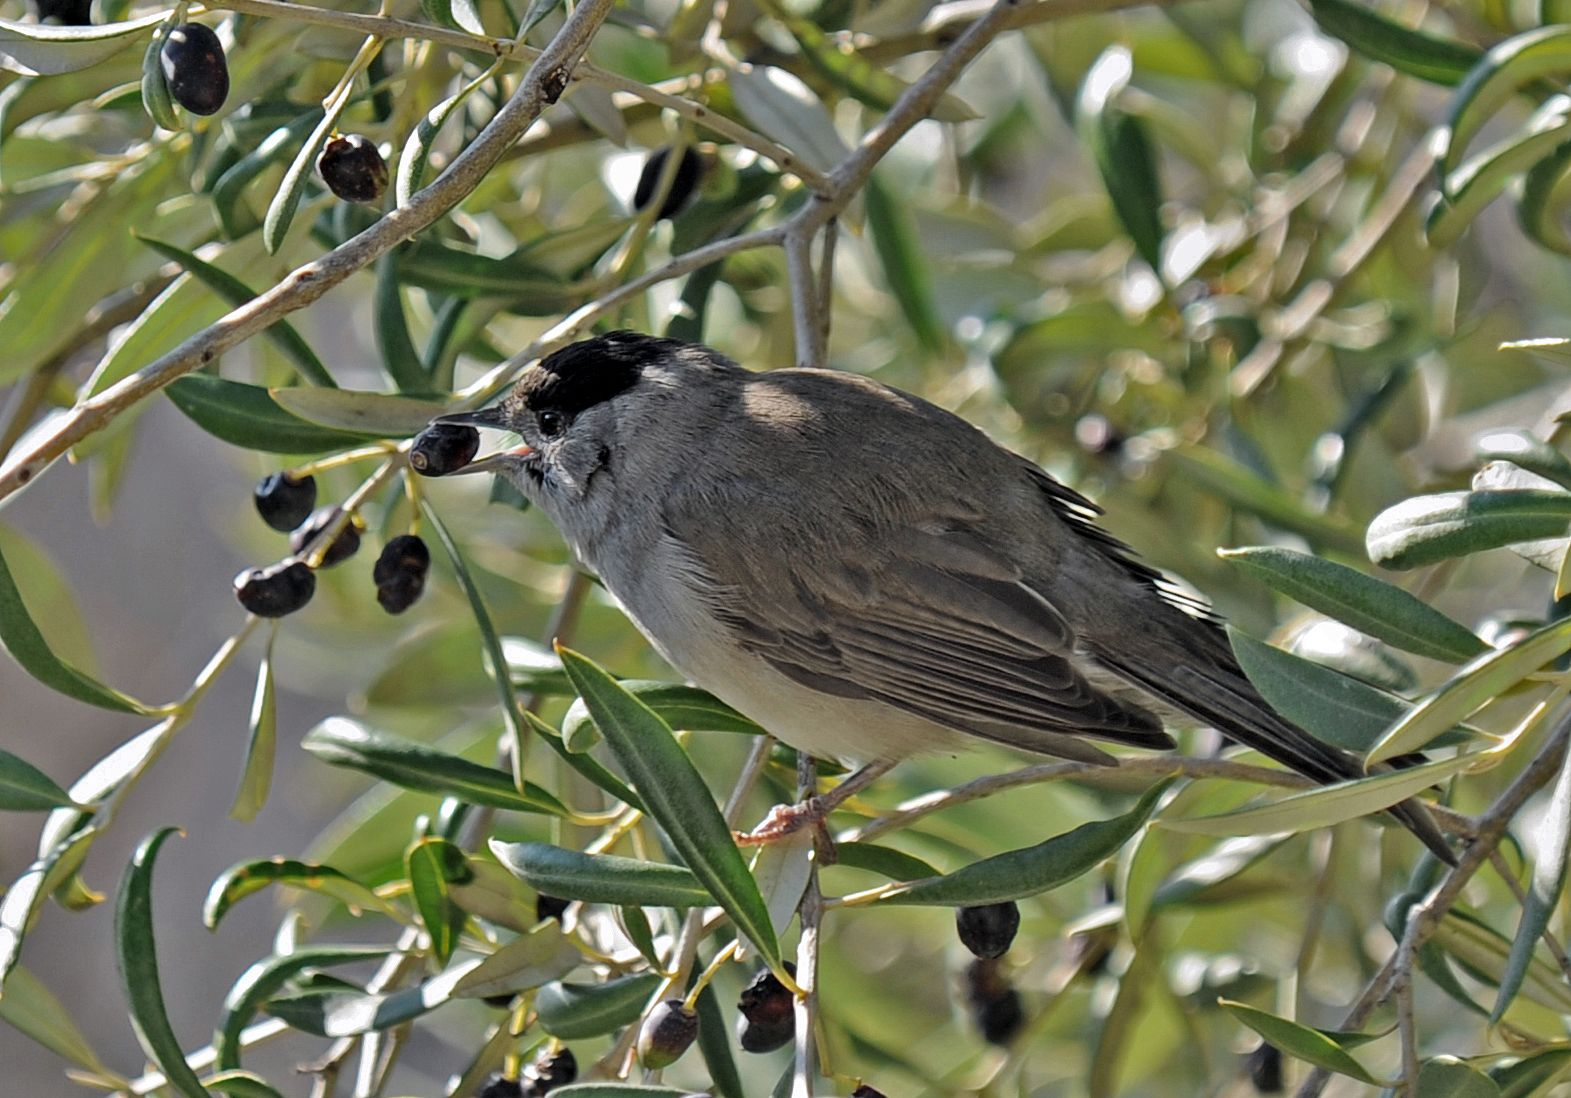 A male blackcap bird eating an olive from the tree